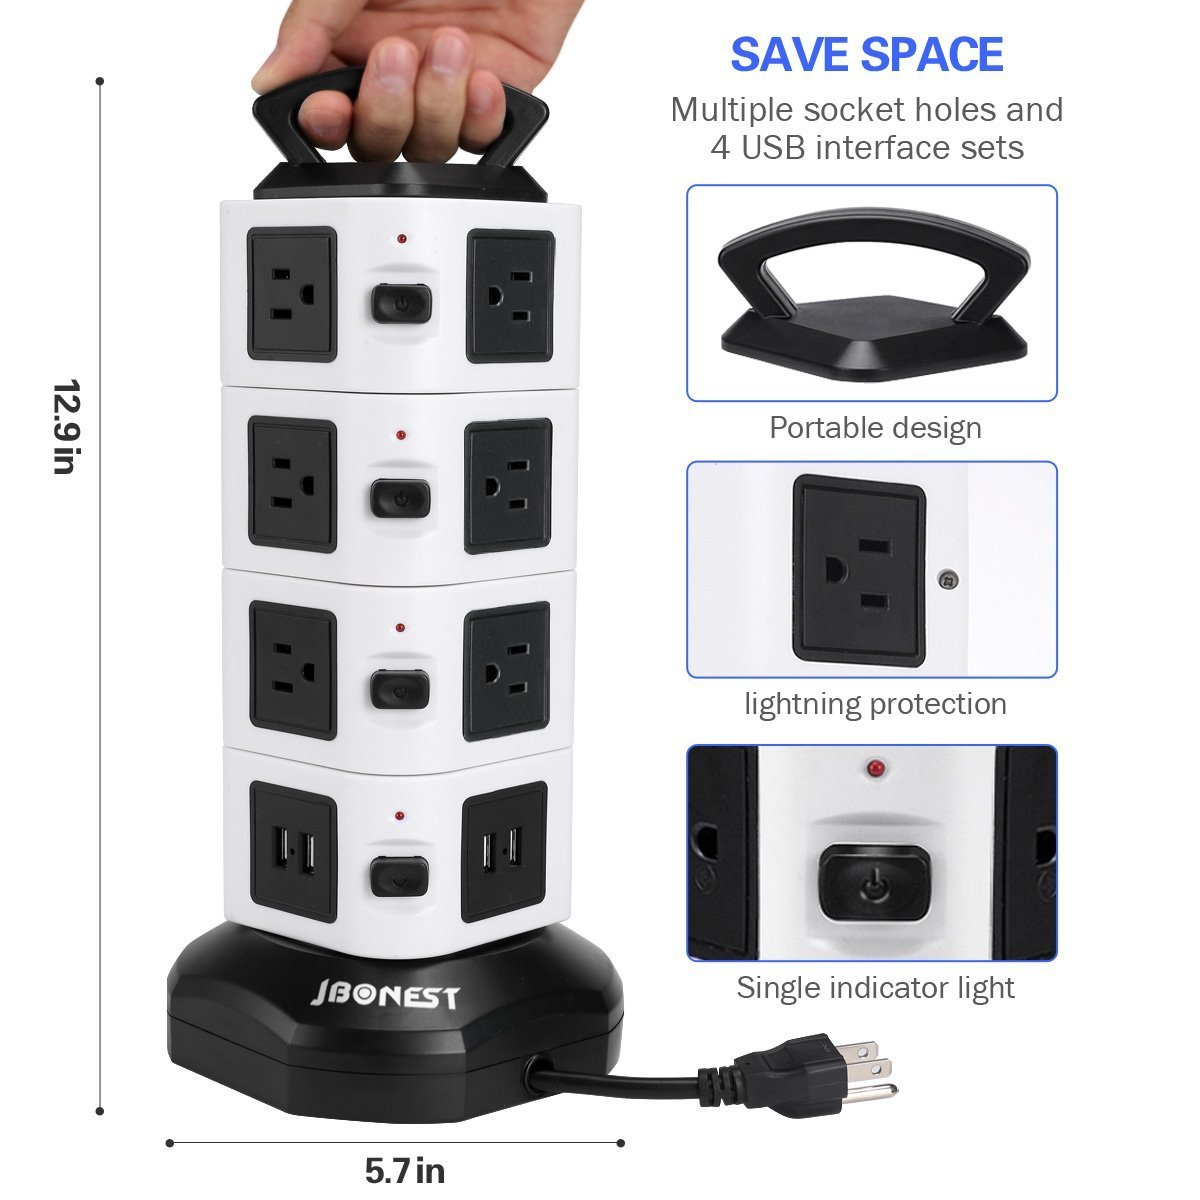 Jbonest Power Strip Tower 16 Outlet 4 Port Usb With Up To A Bar By Cutting The Plug Off Of Powerbar No Idea As I Surge Protector6ft Cord Wire Extension Charging Station Universal Socket For Pc Laptops